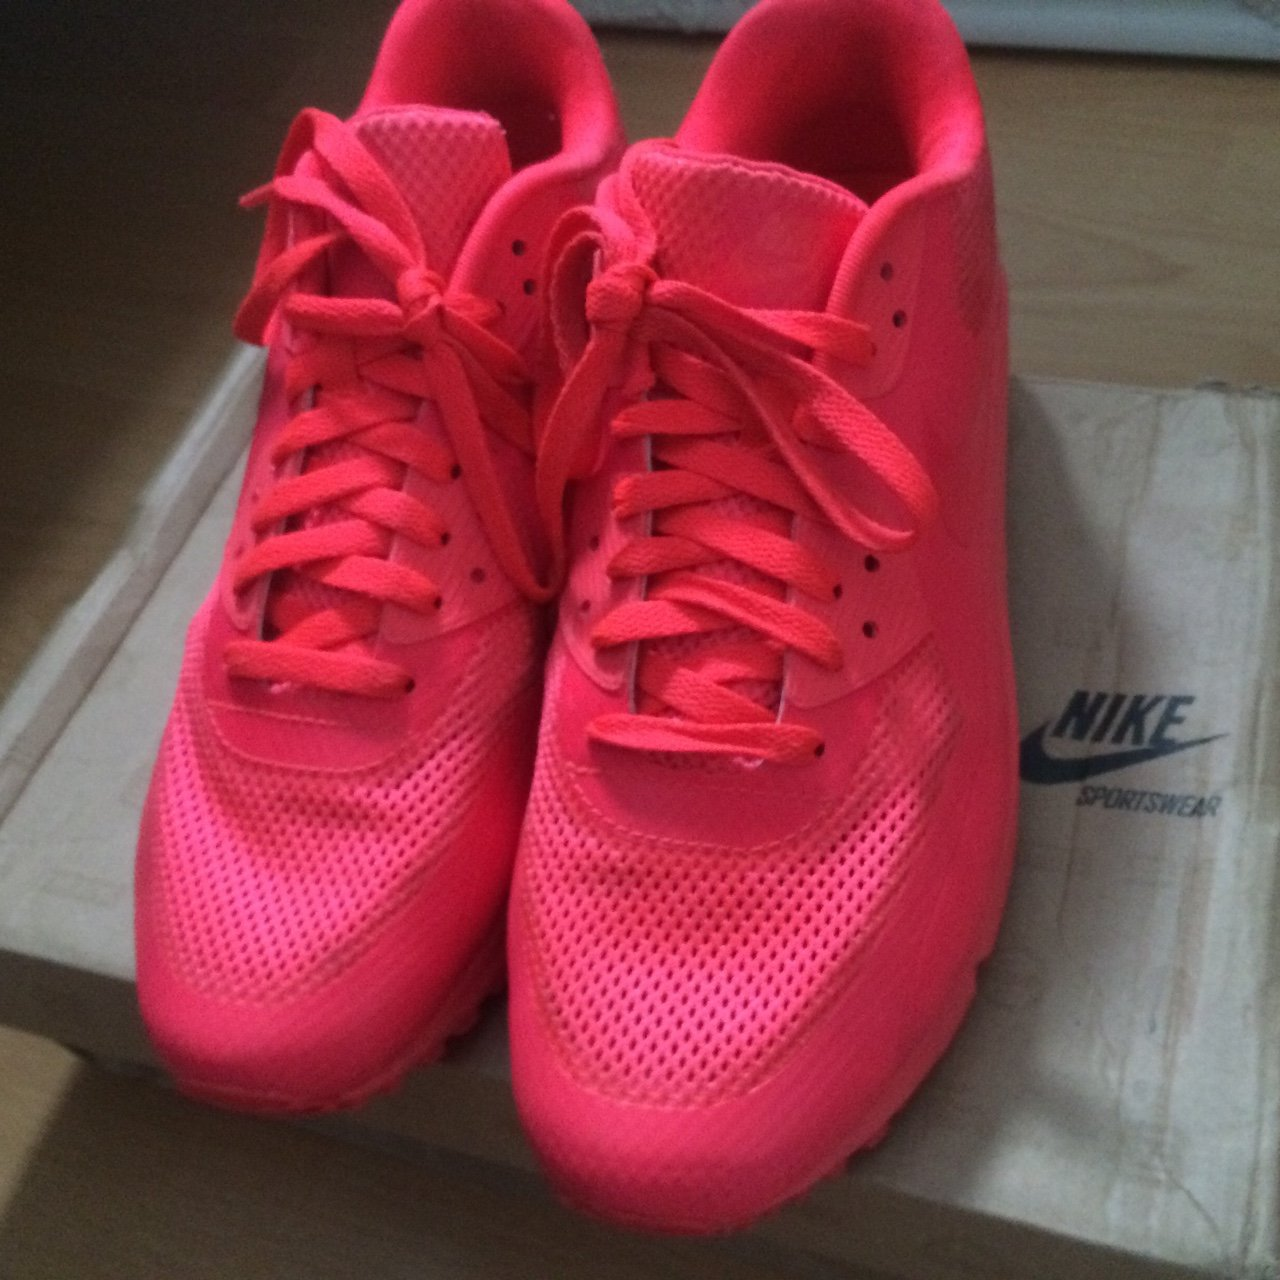 newest f5382 9eeac  bvsed. 4 years ago. Gillingham, Medway, UK. Nike Air Max 90 Hyperfuse  Solar Red .